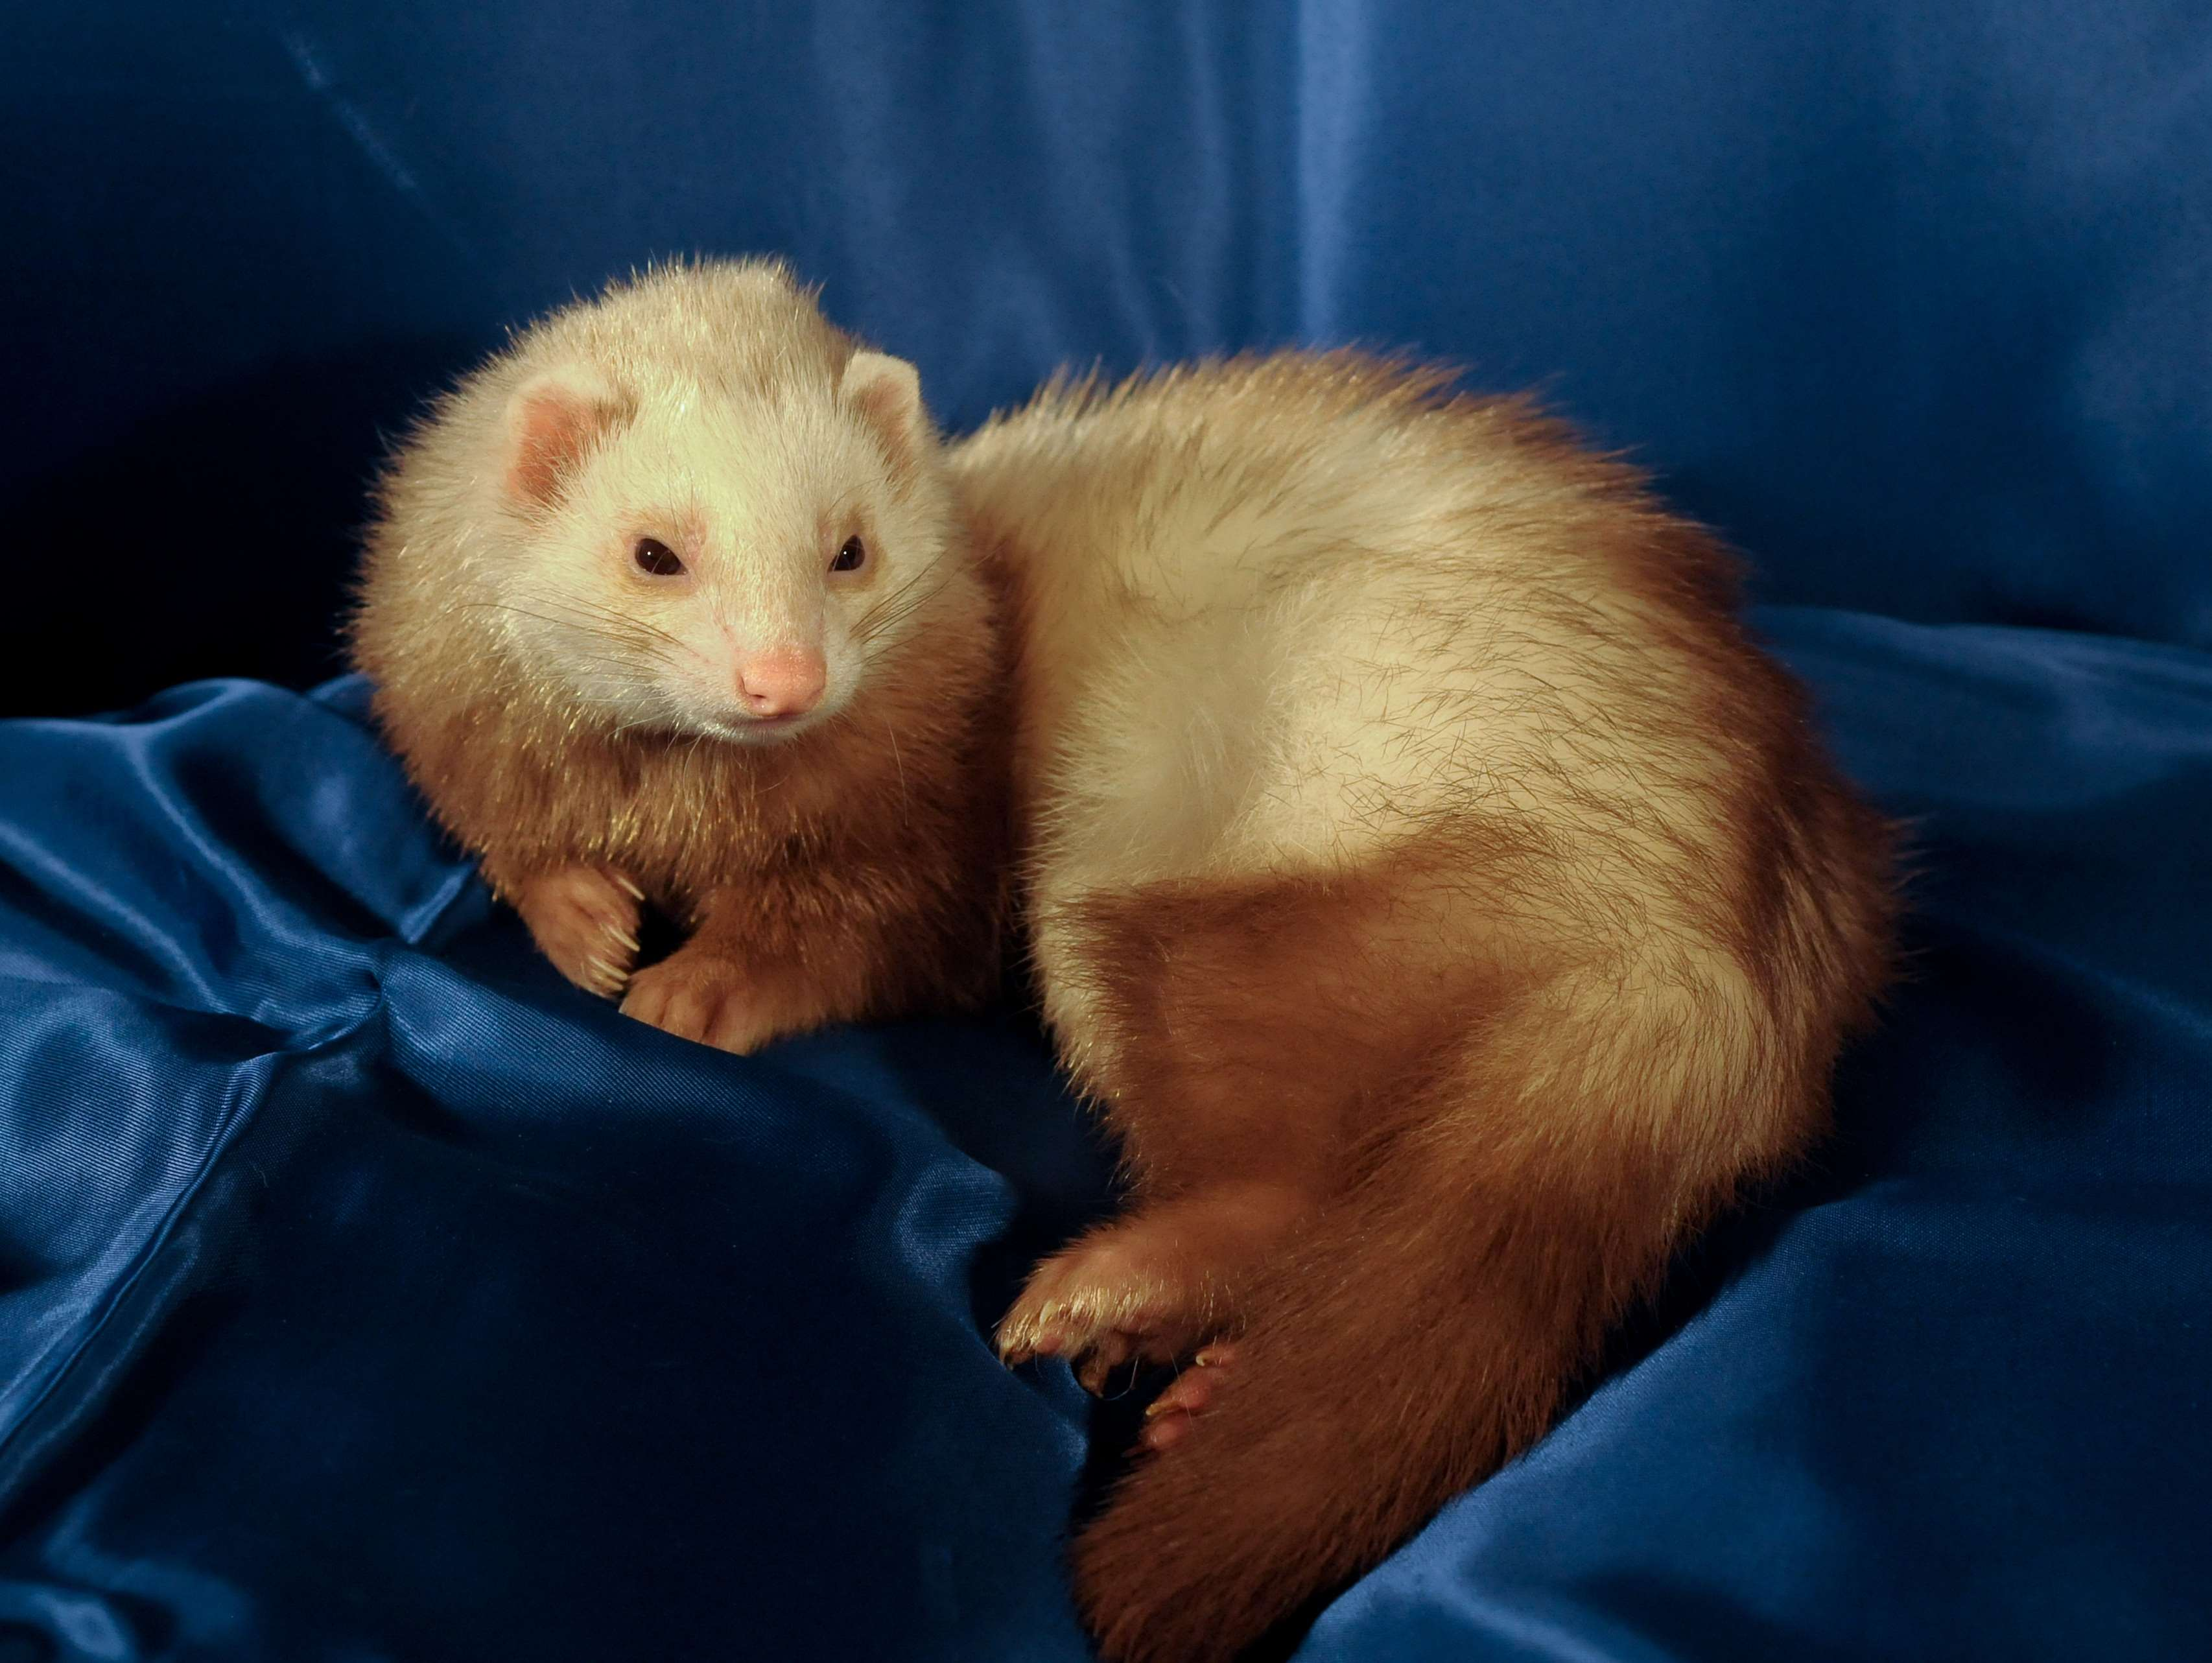 Animal Domestic Ferret Wallpaper And Background 胴 が 長い 動物 1388227 Hd Wallpaper Backgrounds Download